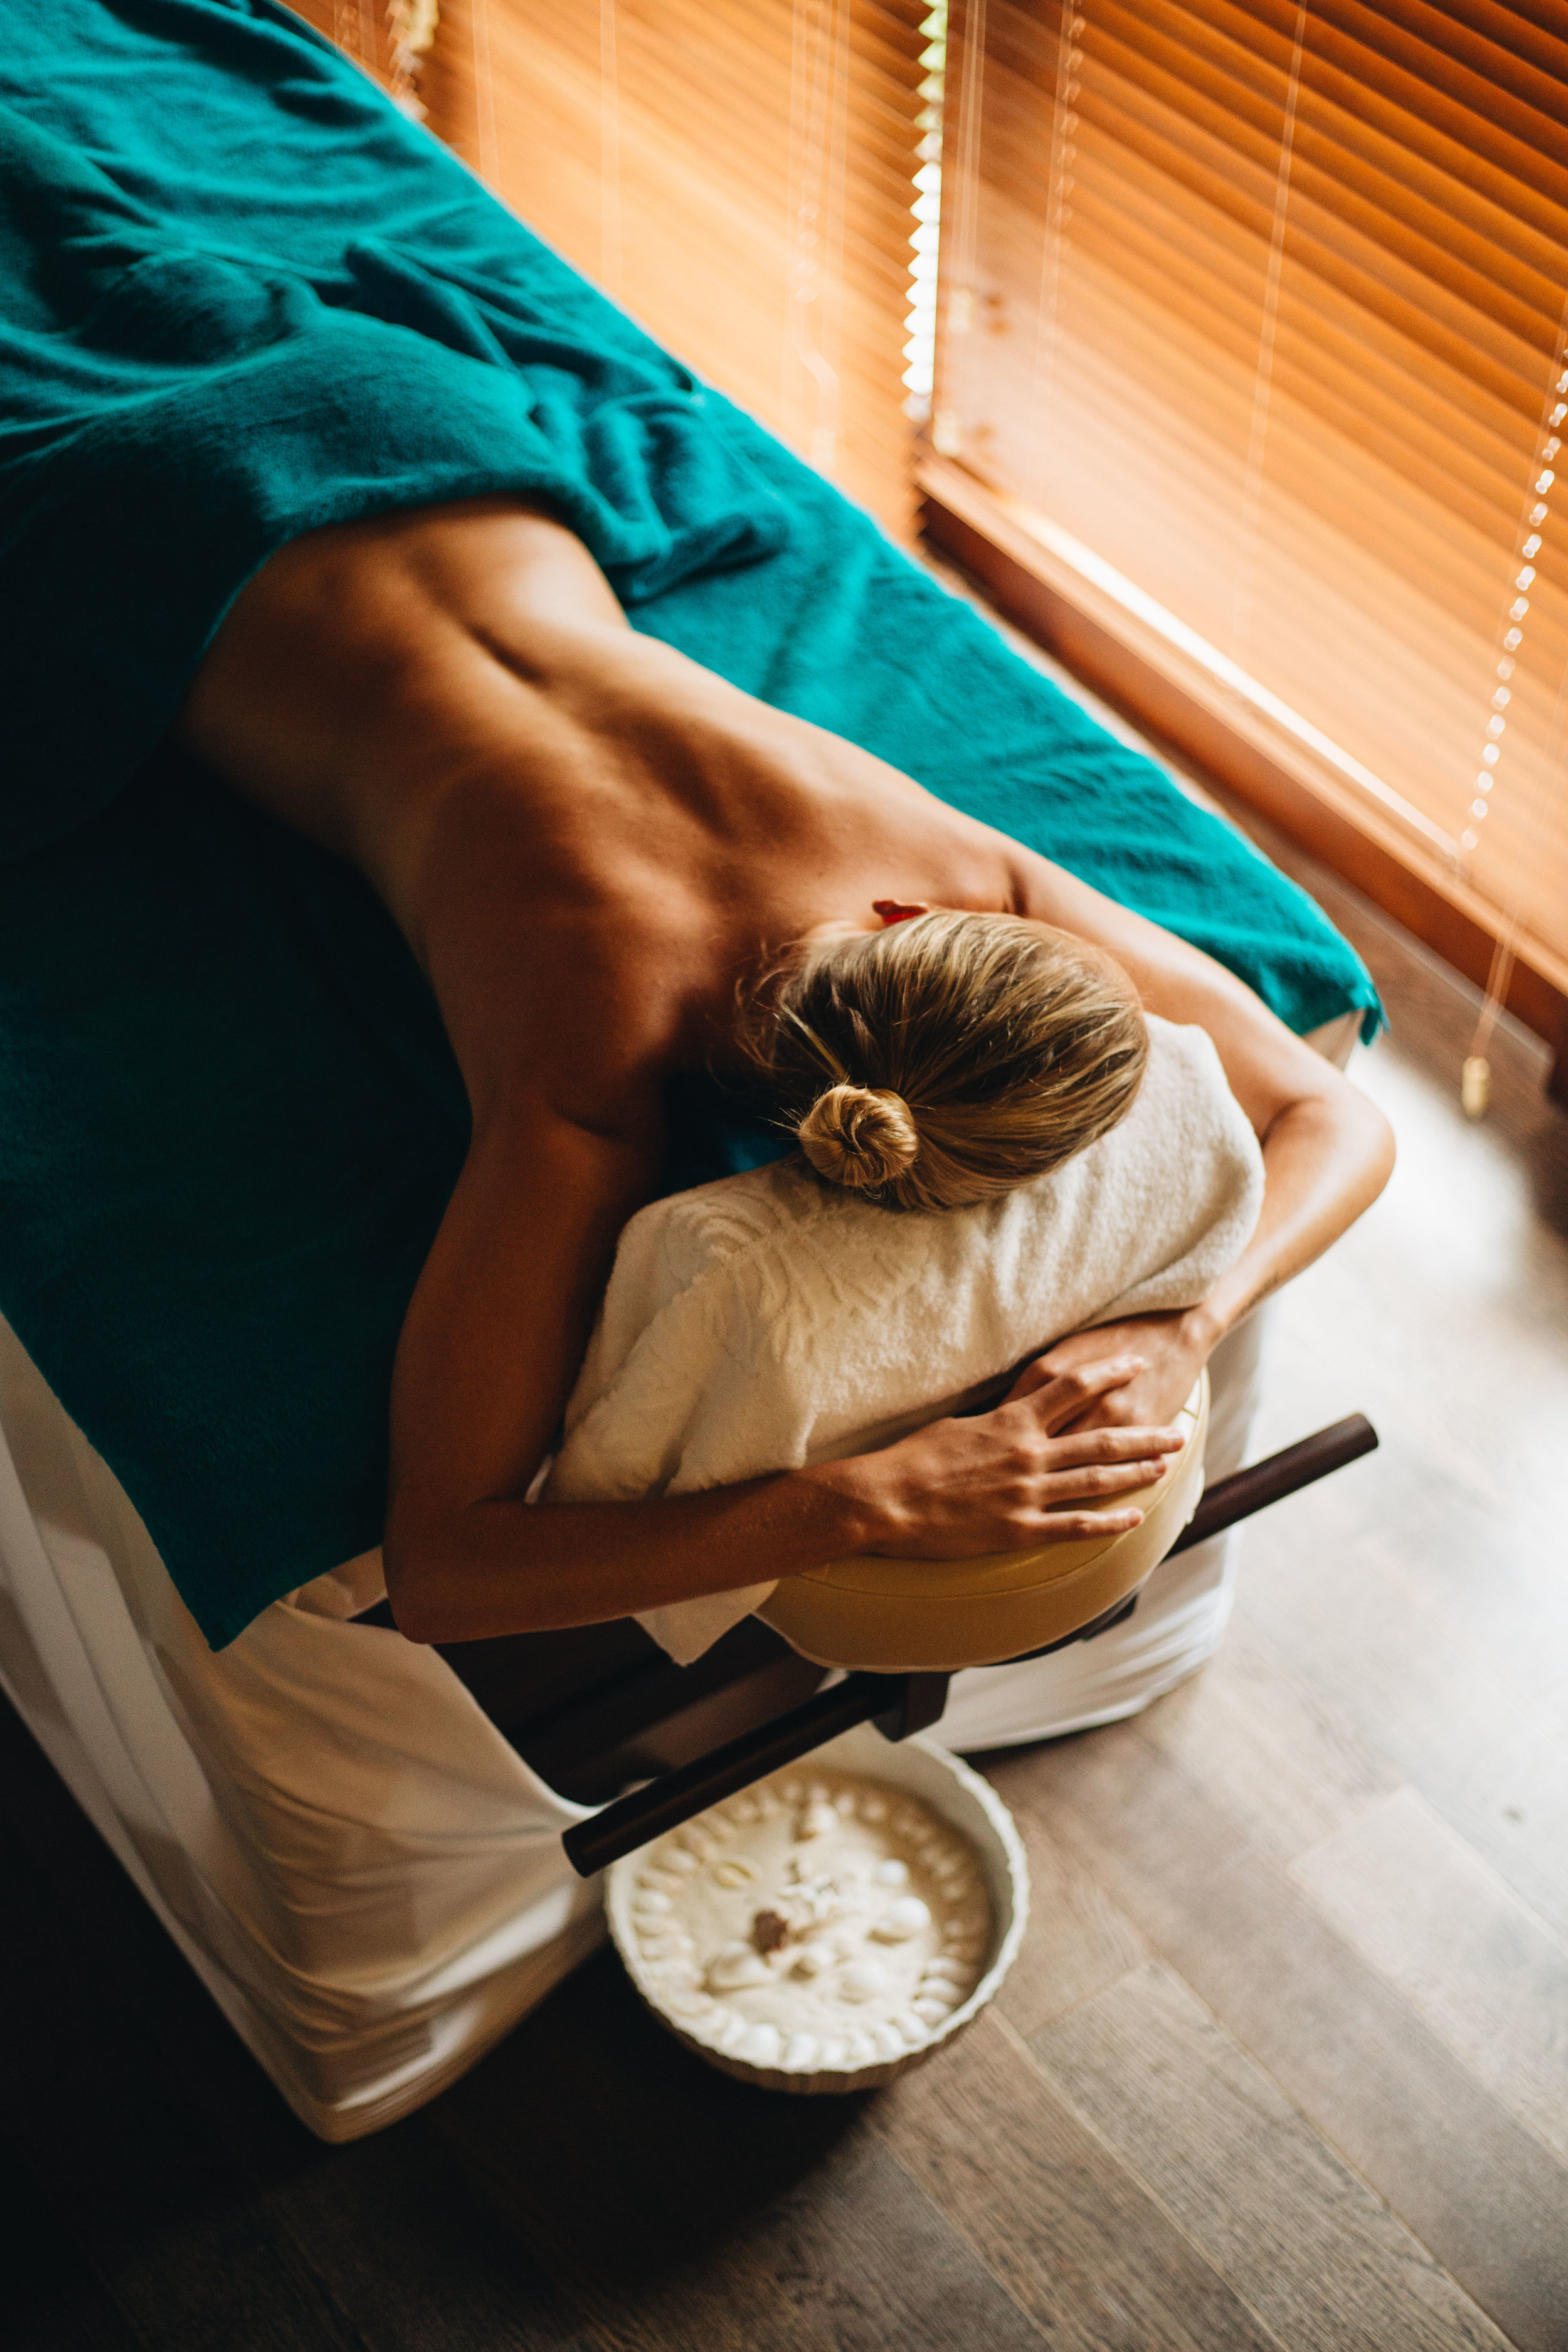 10:00 AM  // After a leisurely breakfast in the villa, we continued our relaxing morning at the spa. Just a few minutes away from our villa, the Fushifaru spa is nestled in the green center of the island and a couples balinese massage was just what the doctor ordered!